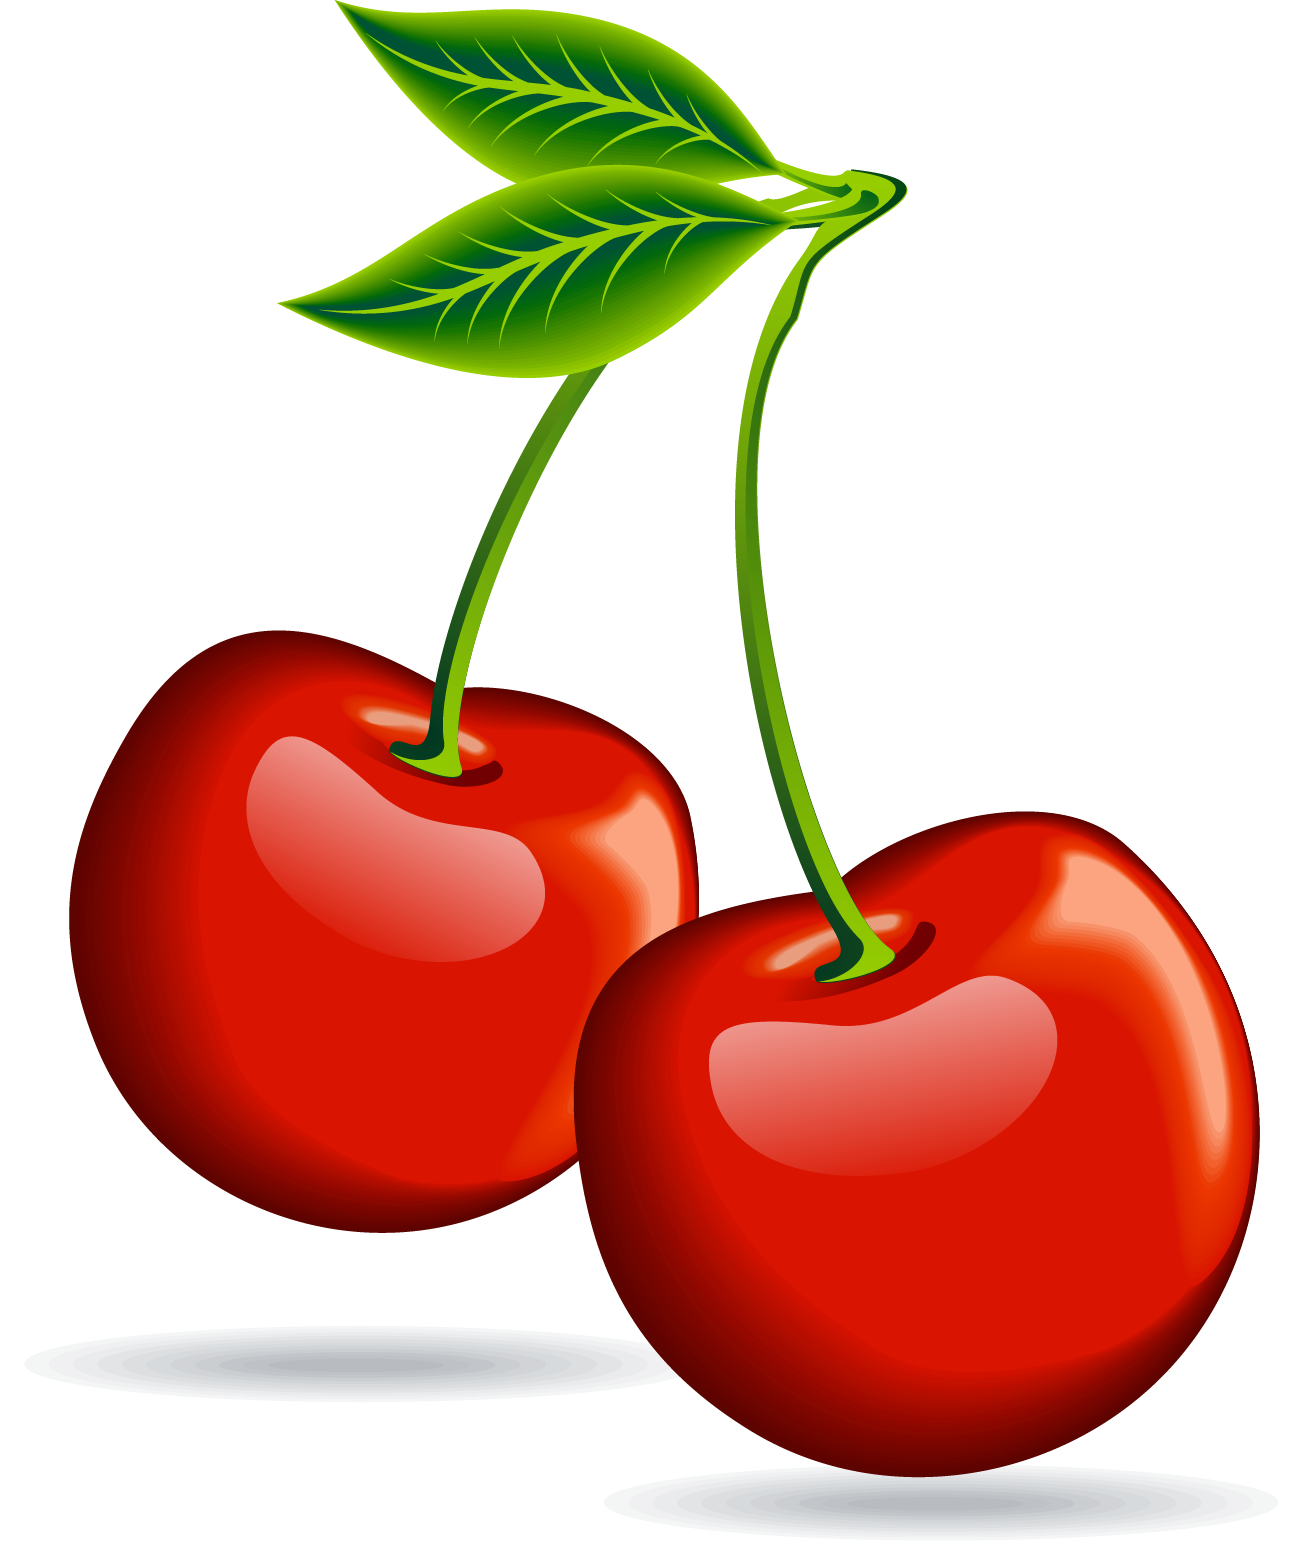 Cherries clipart. Cherry png transparent free